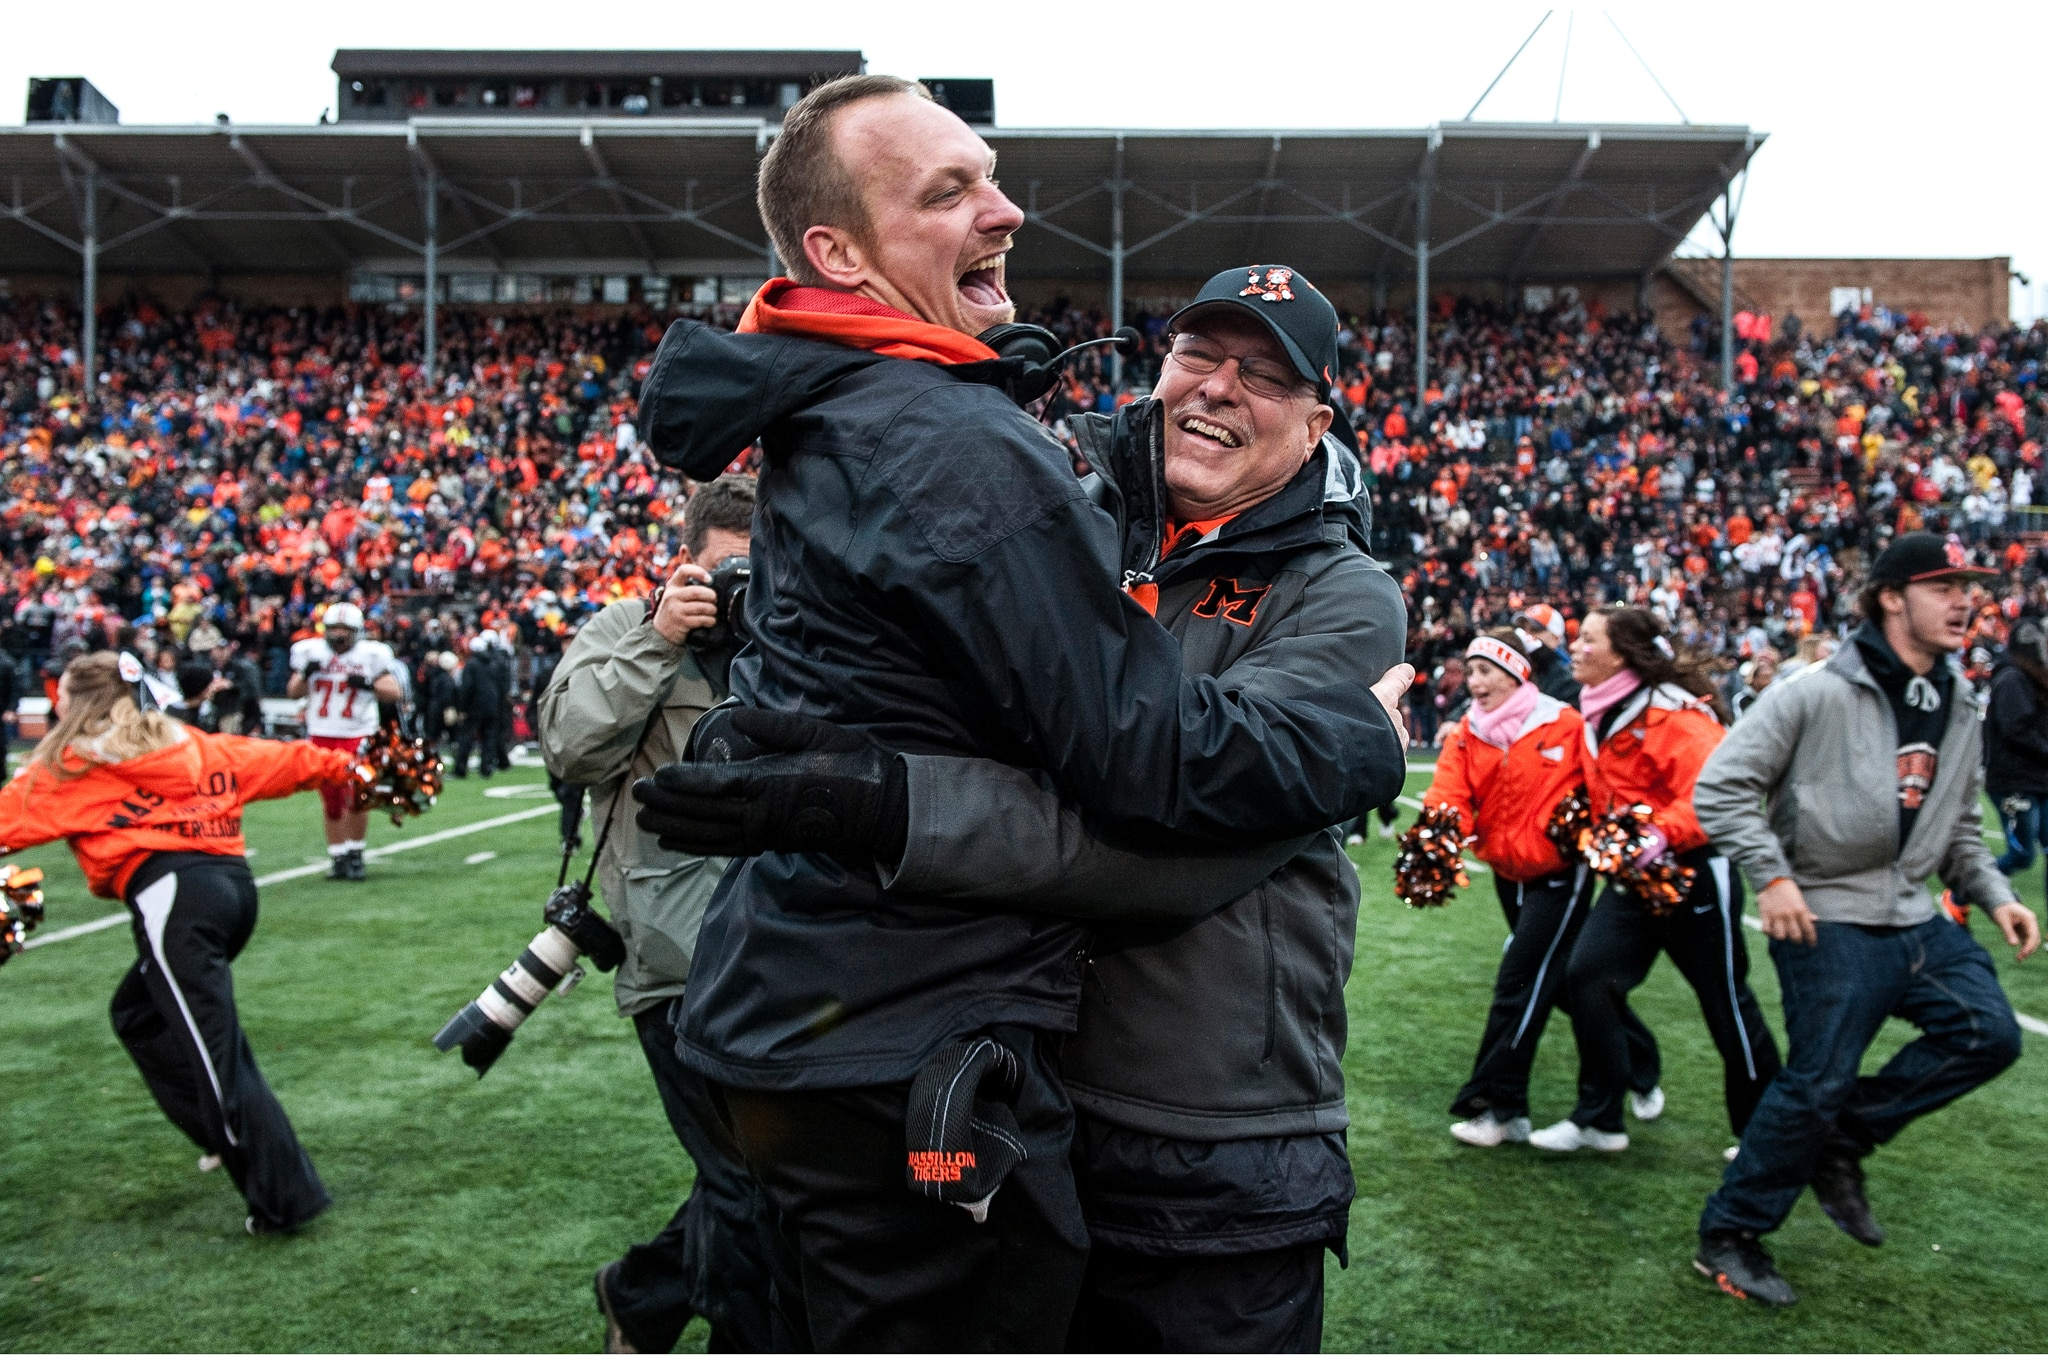 Two men joyfully embracing on a football field (© Gary Harwood/Tiger Legacy/Daylight Books)